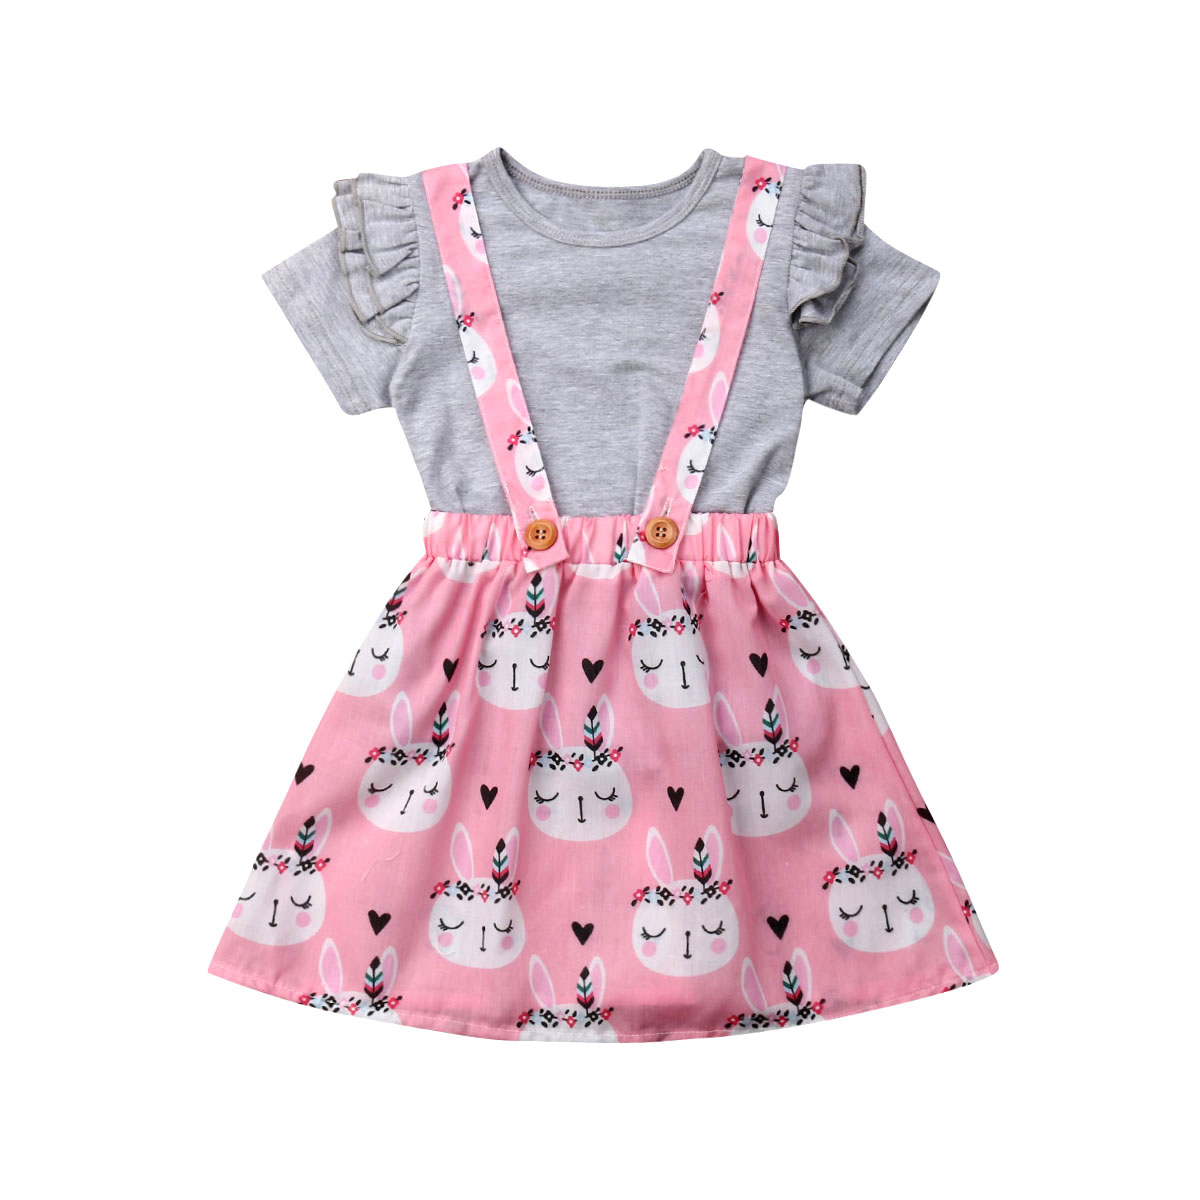 >2019 Easter Toddler Kid Baby <font><b>Girl</b></font> Bunny <font><b>Soft</b></font> Clothes Tops Shirt Tutu Skirt <font><b>Outfits</b></font> Set Summer Clothes